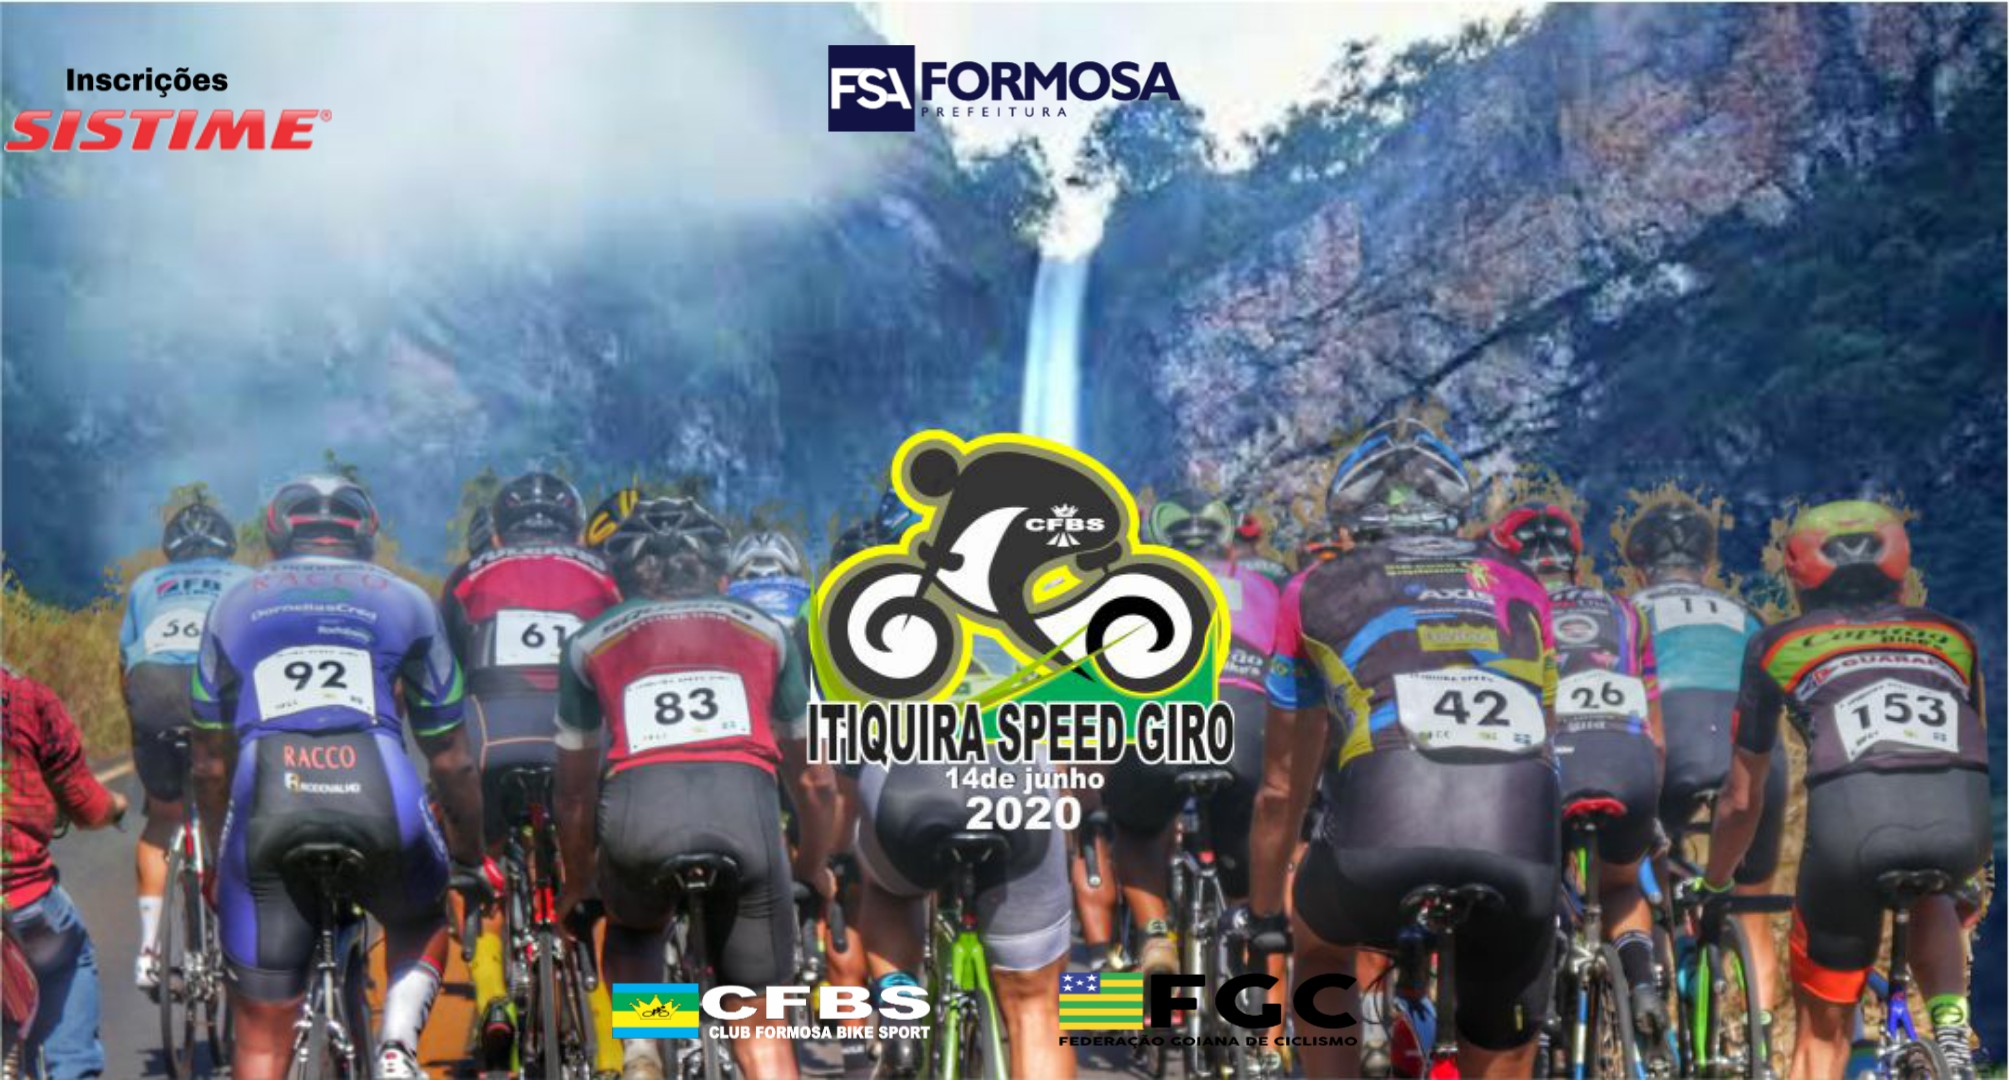 itiquirira-speed-giro-2020-sistime-1